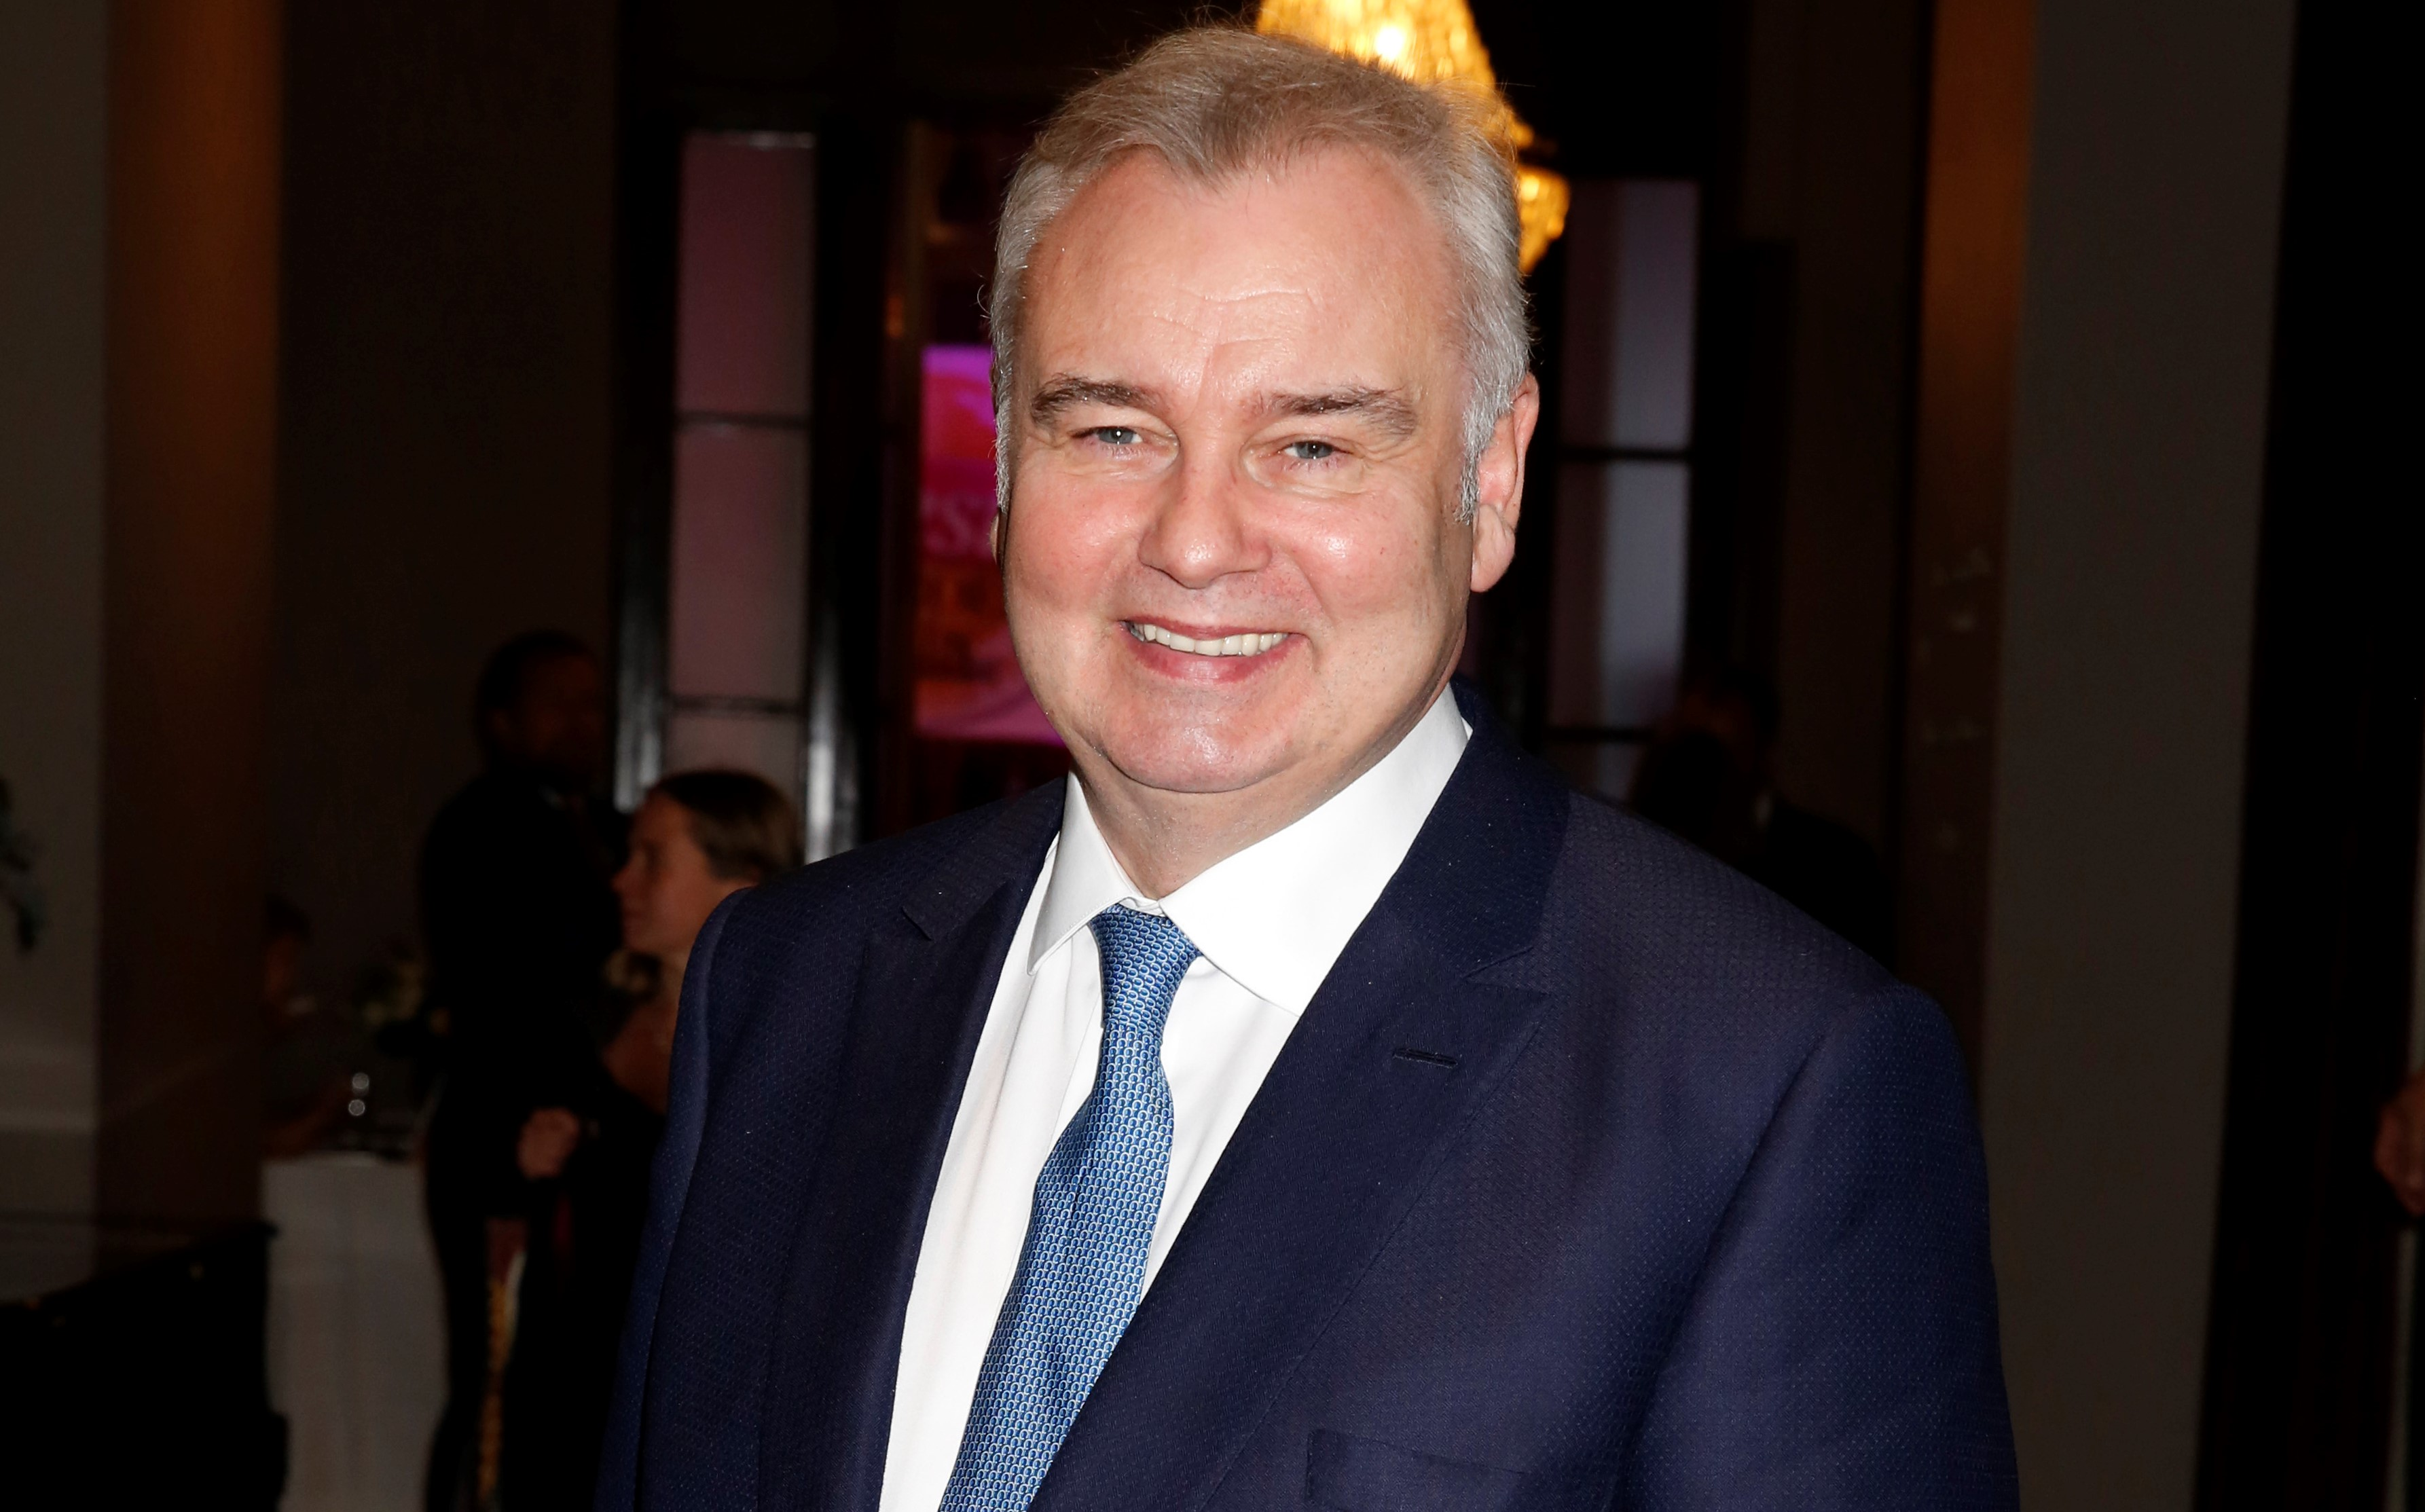 Eamonn Holmes shares rare photo with 'lookalike' sons during family day out